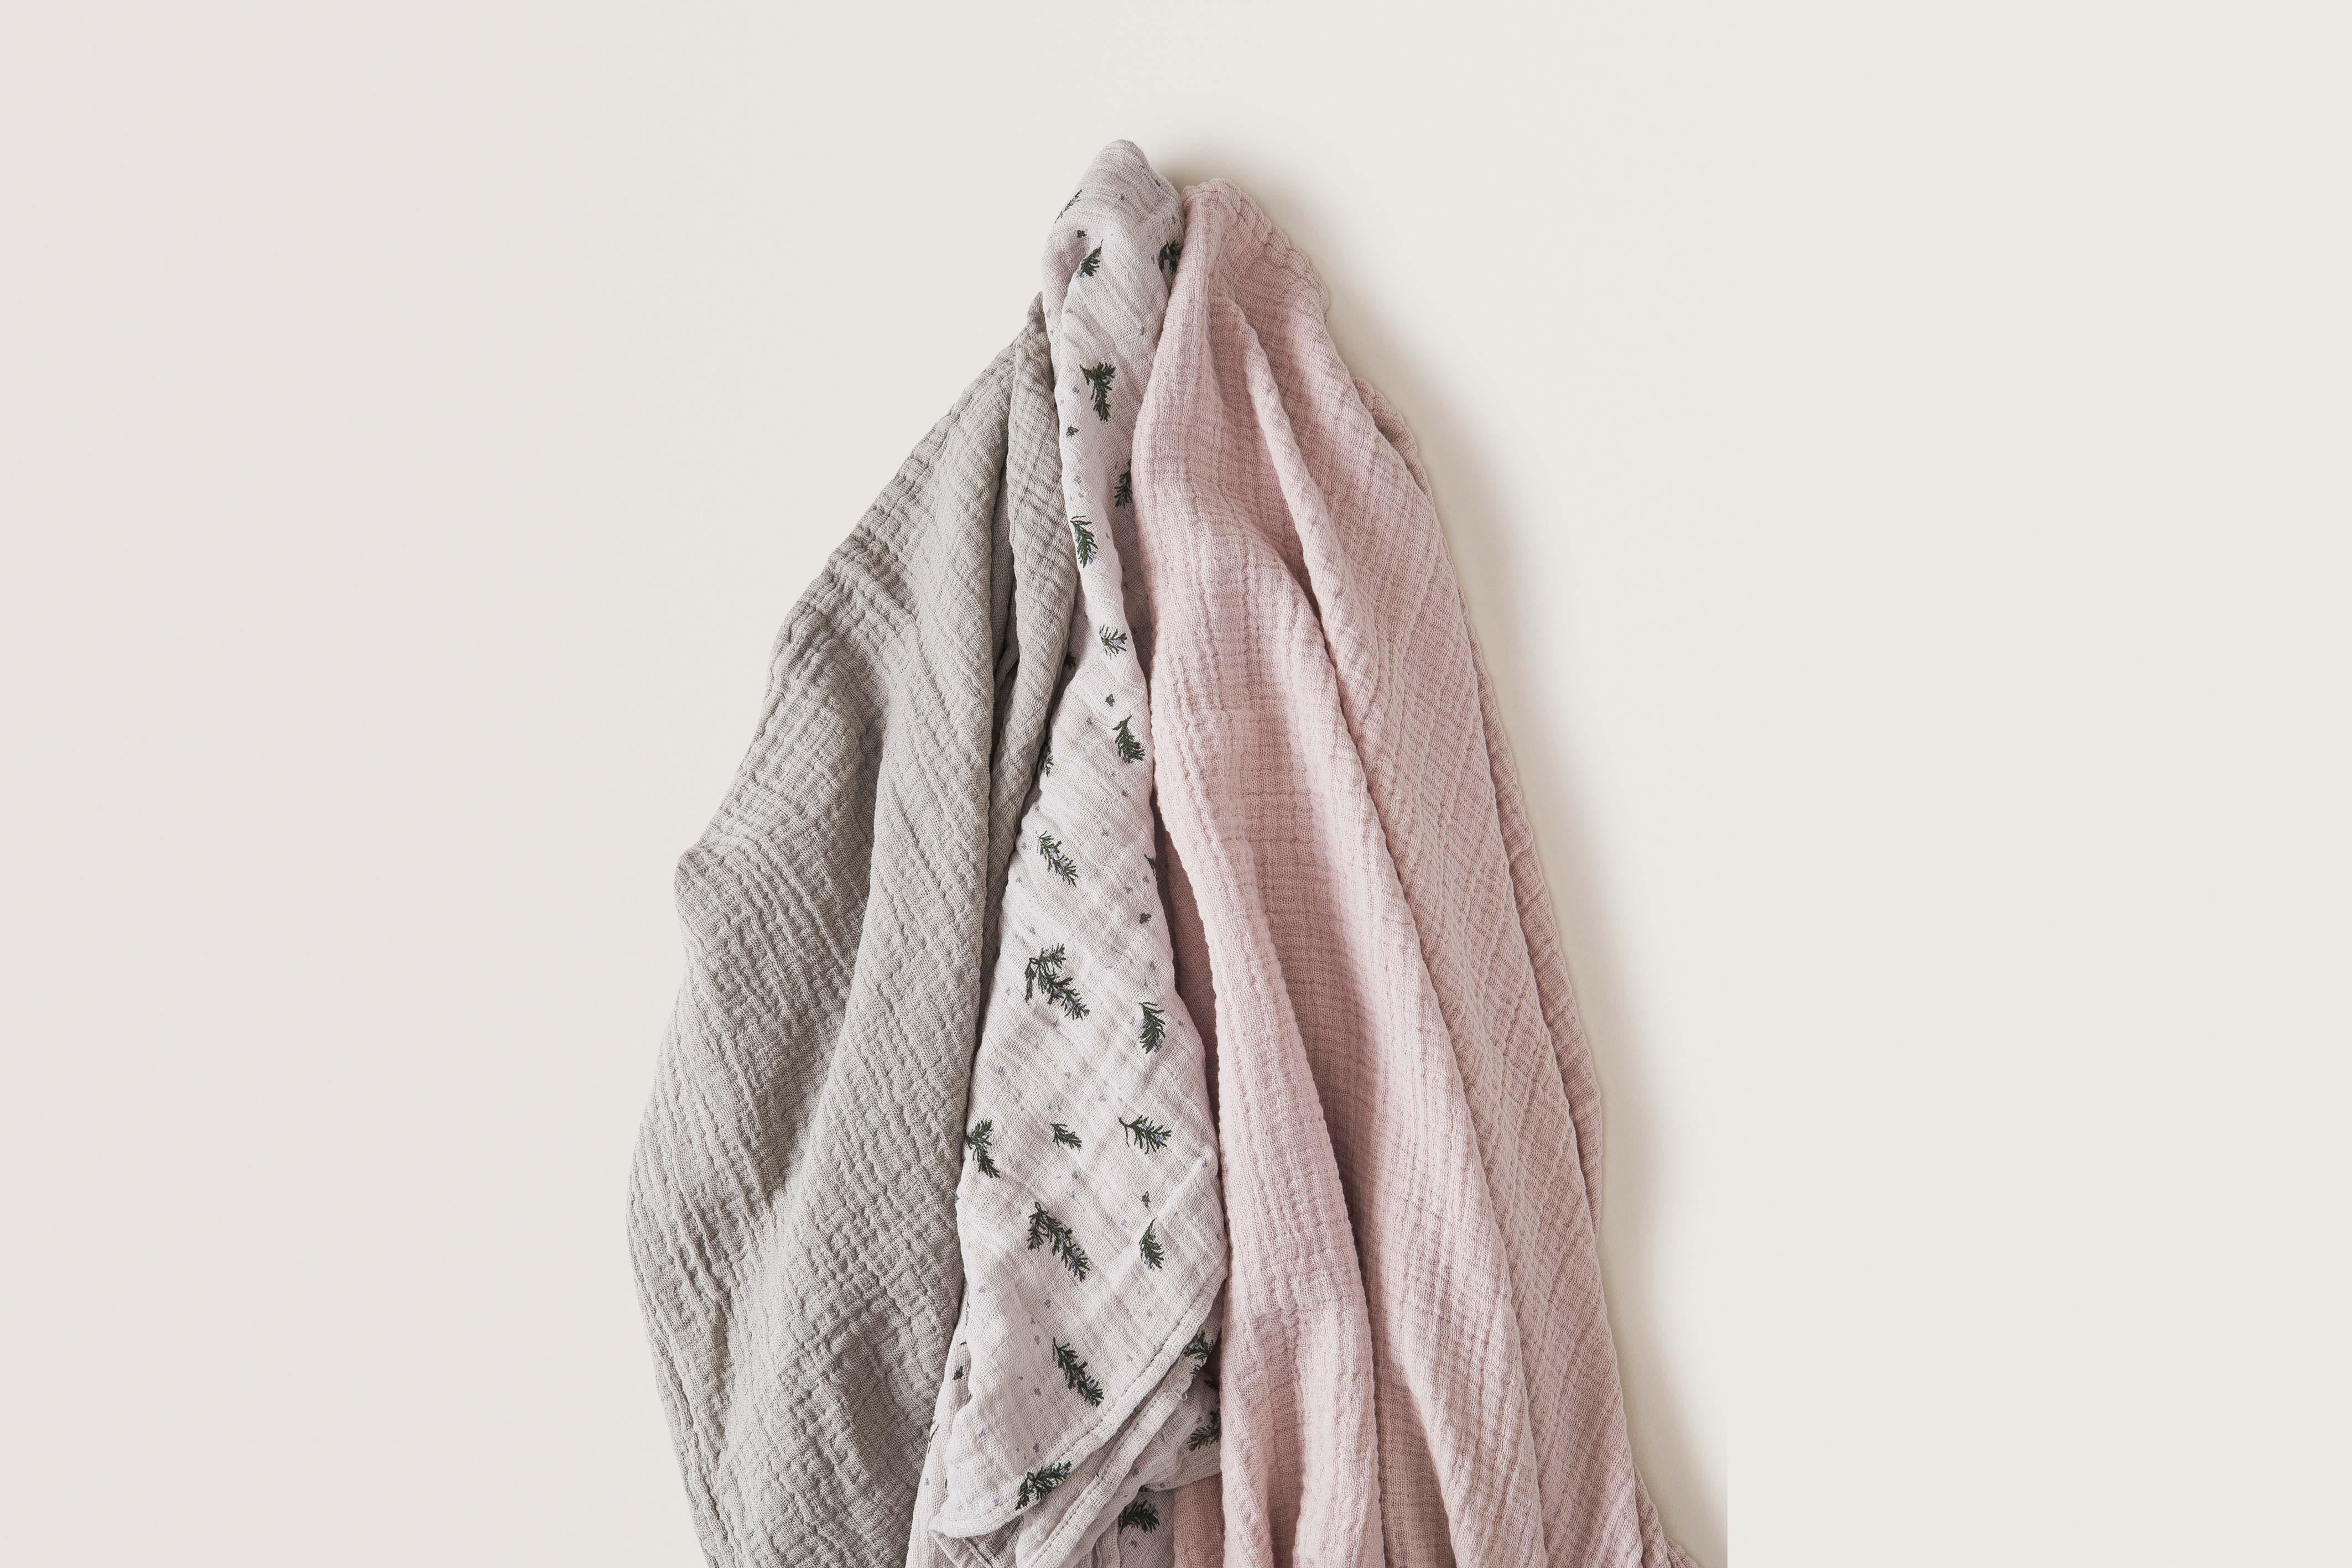 Garbo & Friends Garbo&Friends Rosemary Muslin Swaddle Blanket - Pearls & Swines